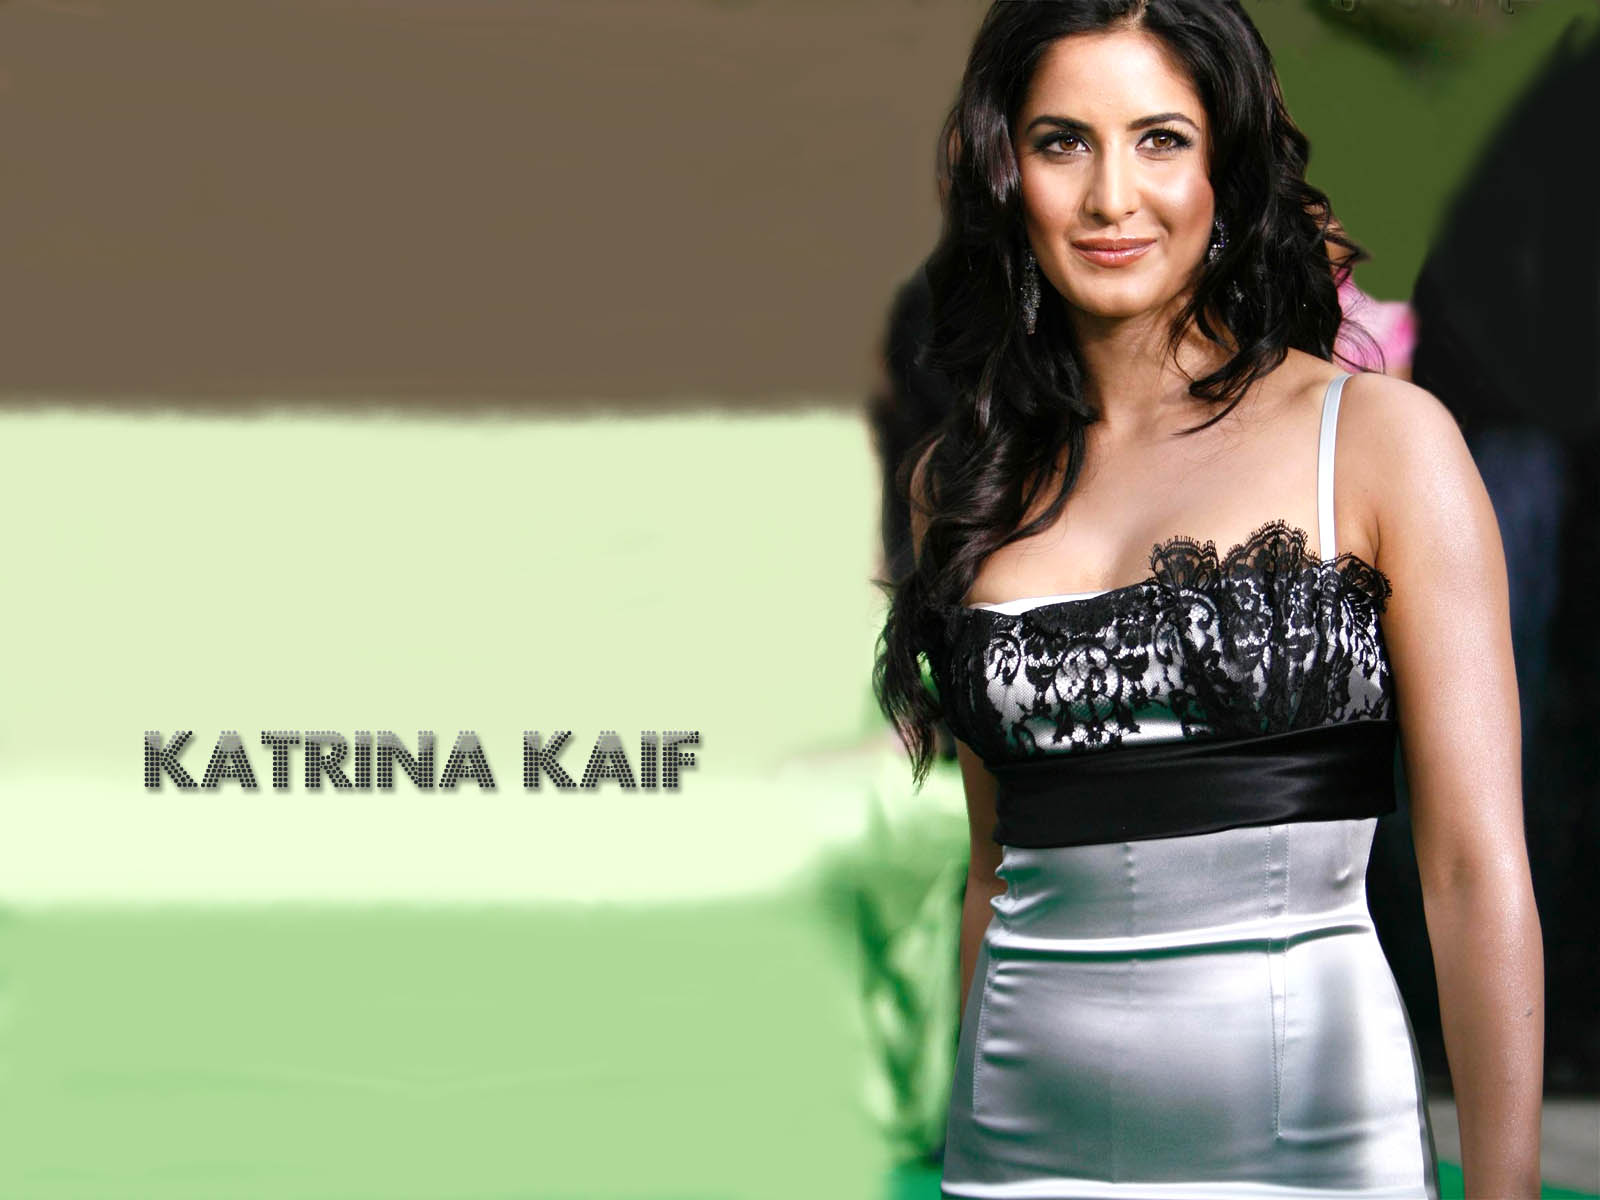 Katrina Kaif Sexy Video Hd Download